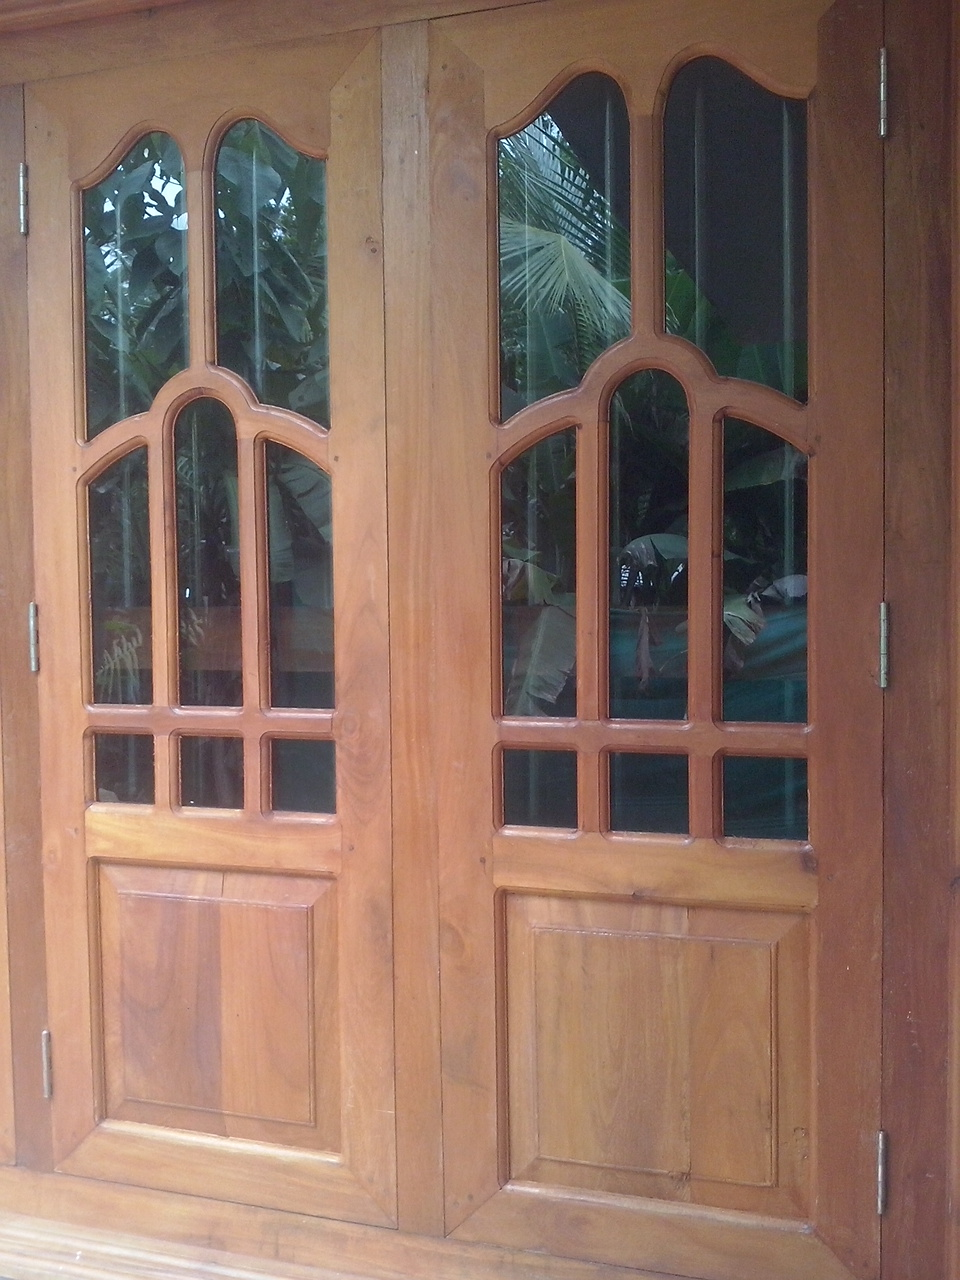 Bavas wood works kerala style wooden window door designs for Window design wood